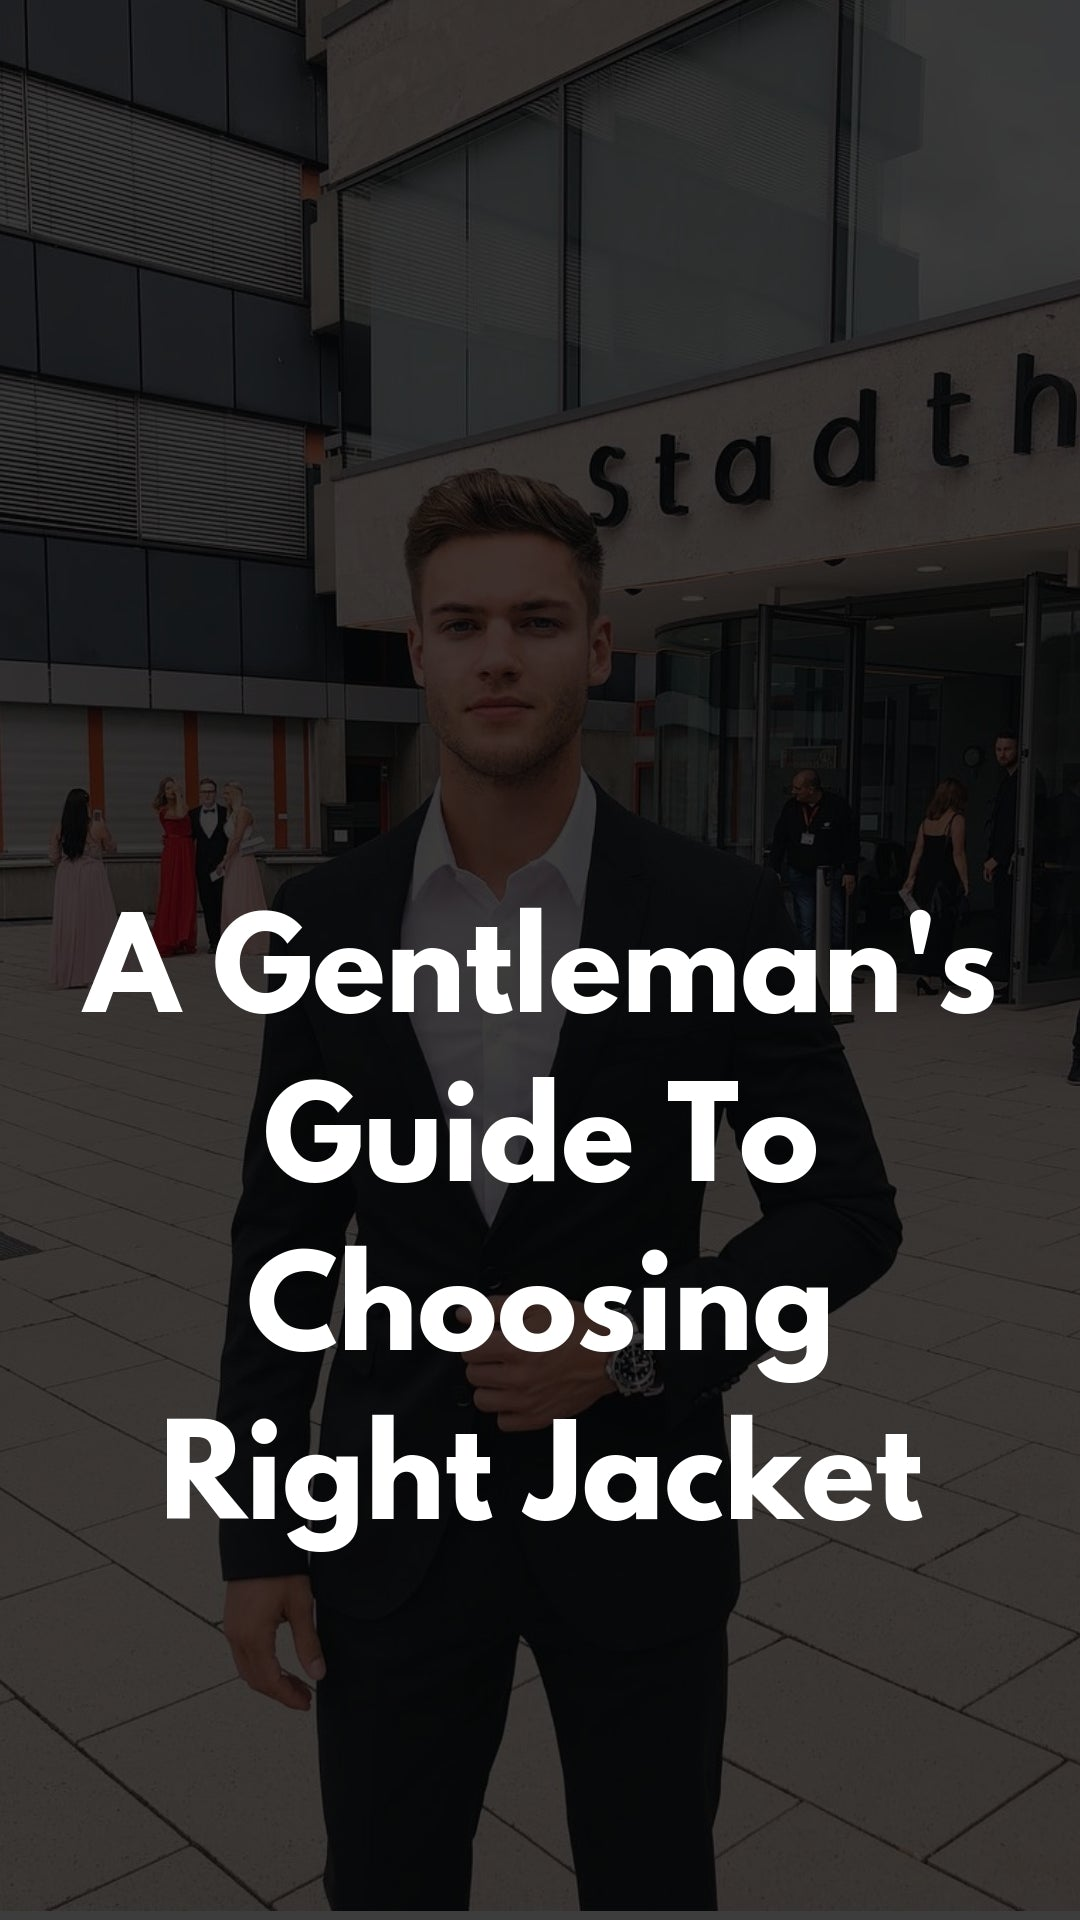 A Gentleman's Guide To Choosing Right Jacket